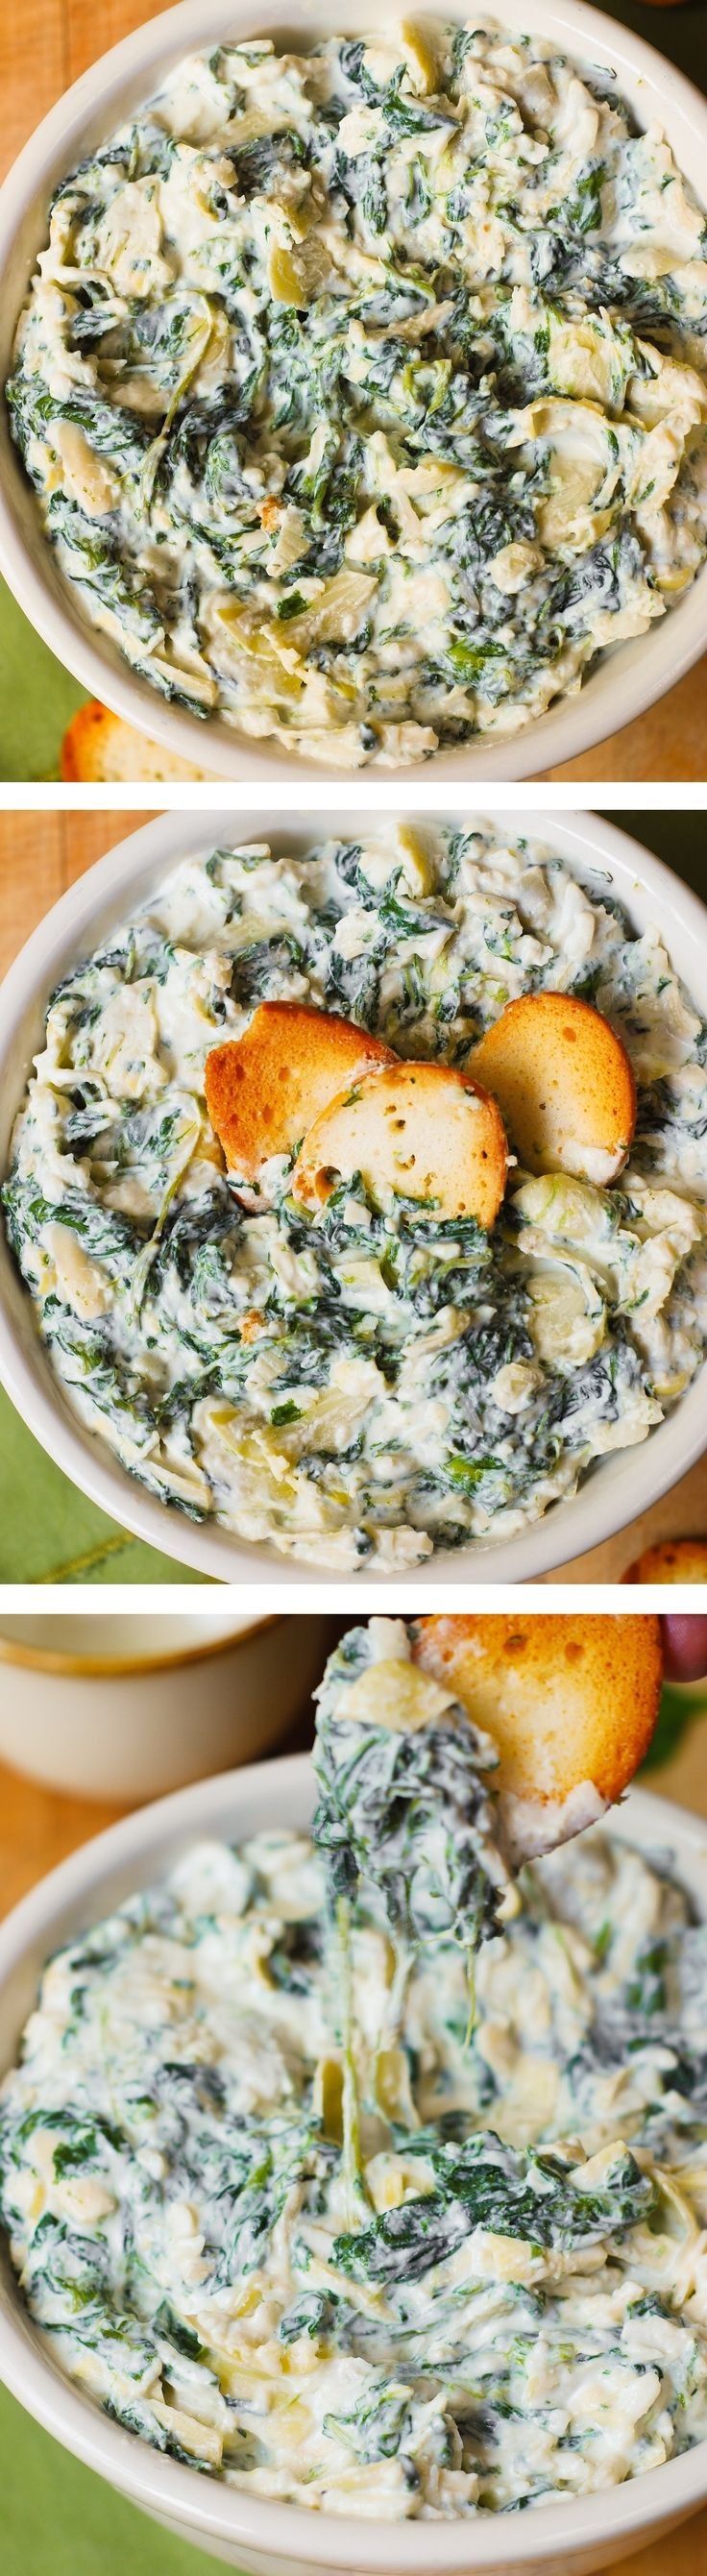 Easy Spinach Artichoke Dip – easy gluten free snack, with gluten free bagel chips!